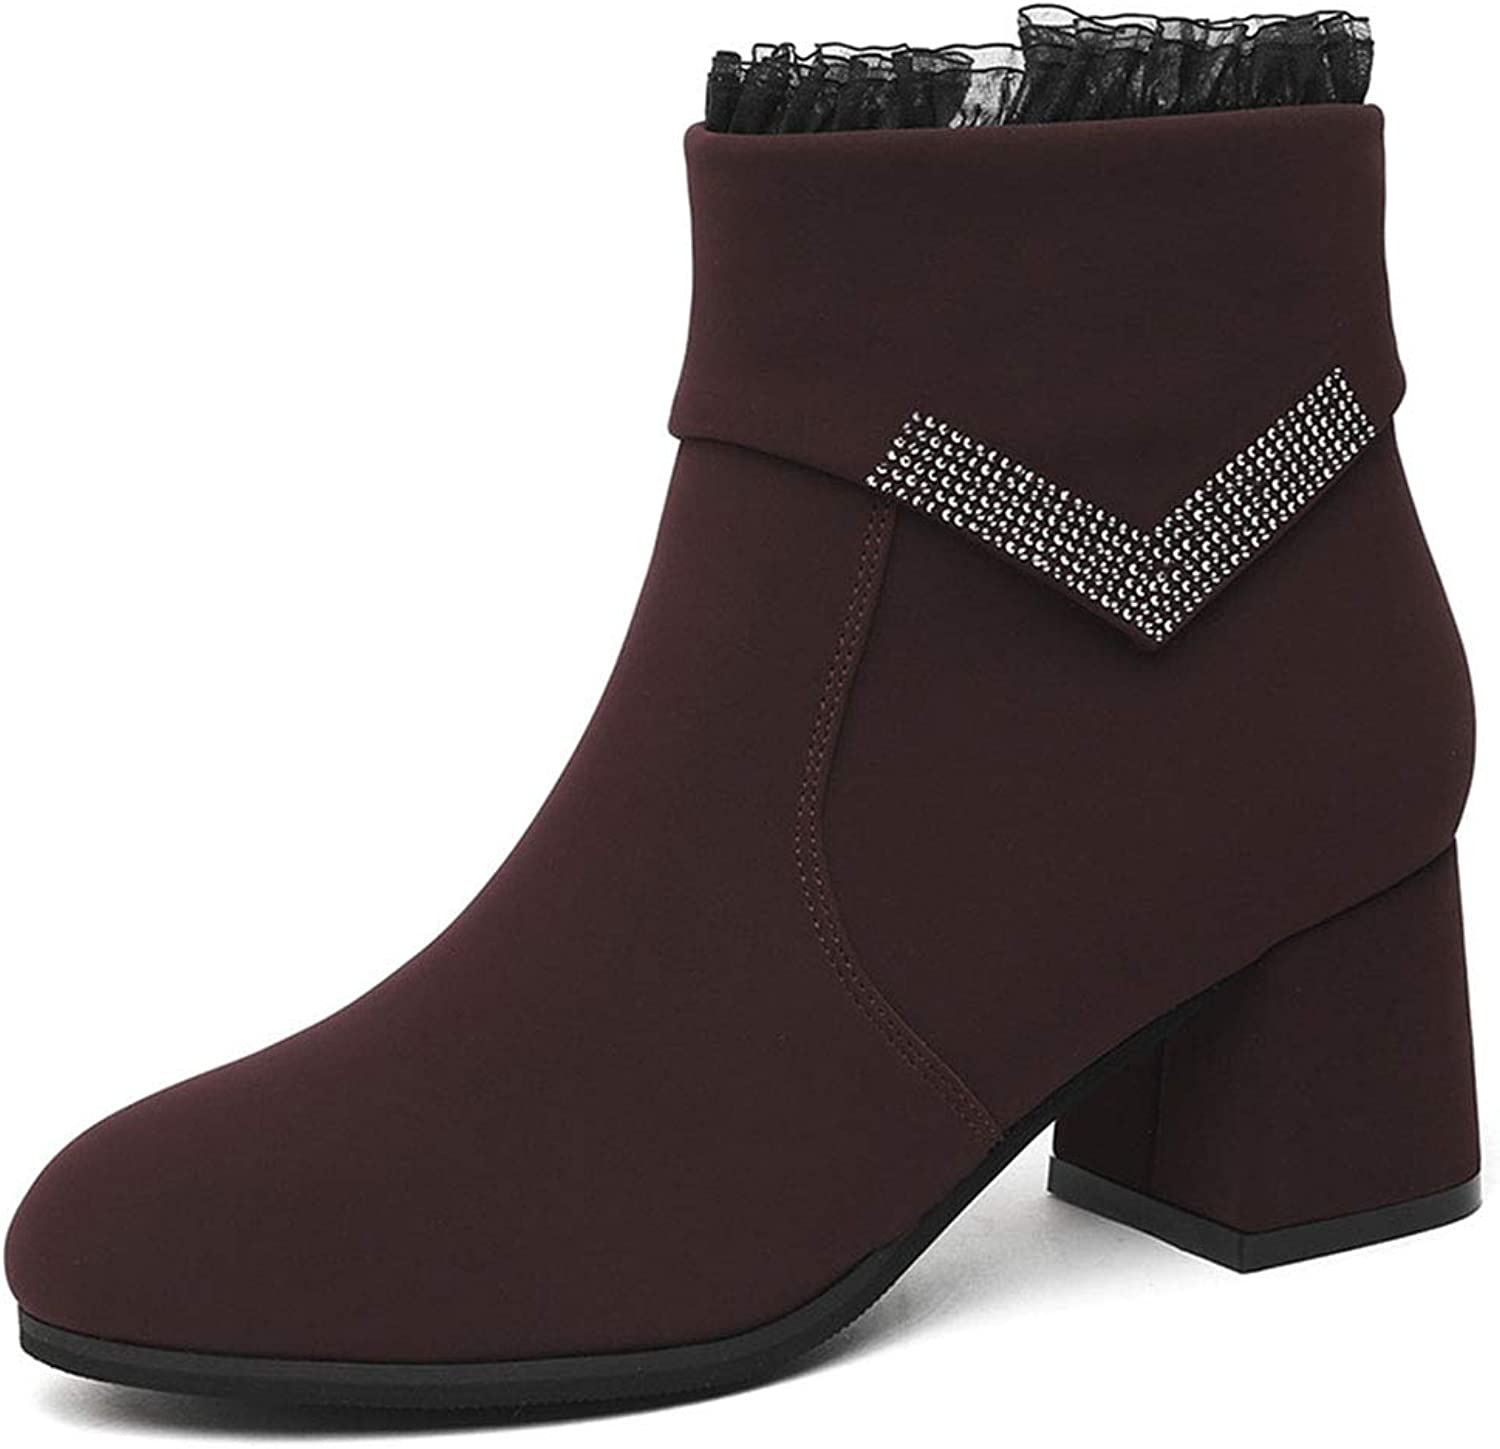 Women's High Heel Ankle Boots, Autumn New Rhinestone Lace Rough Martin Boots Fashion Women's Boots Spring Autumn Women's shoes (color   B, Size   40)